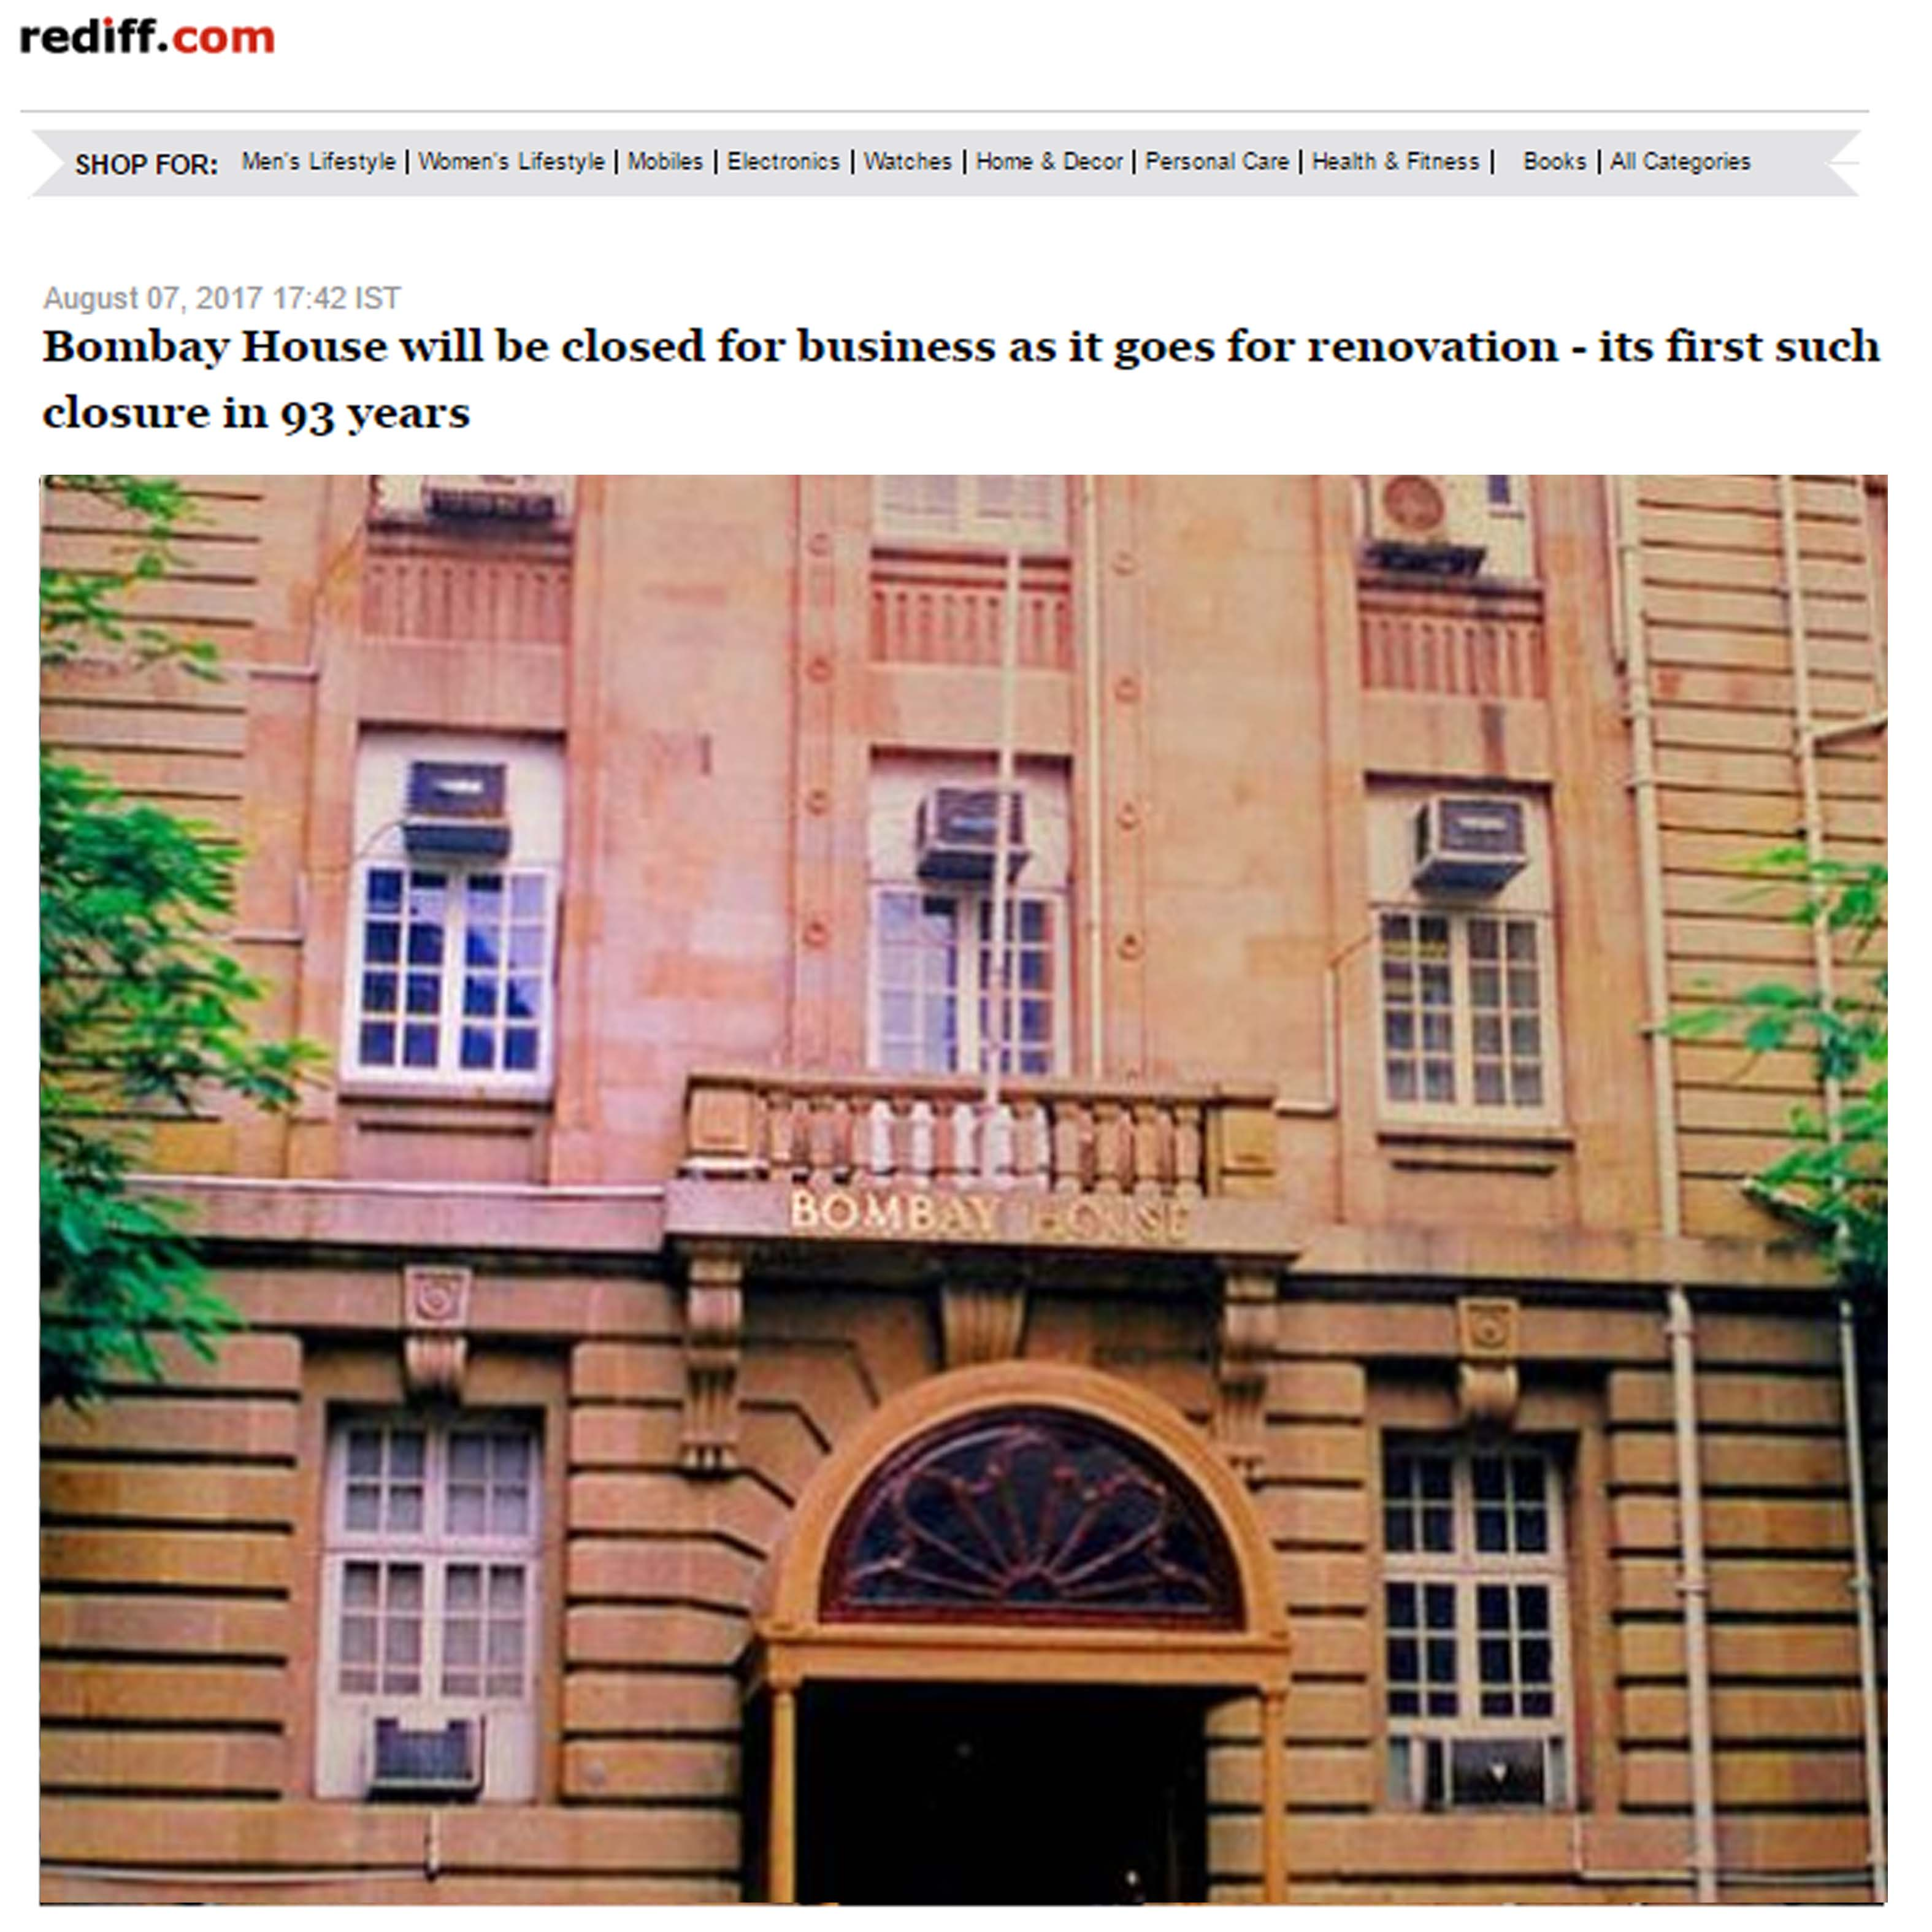 Bombay House to be shut for about a year, Rediff.com, 7th August 2017